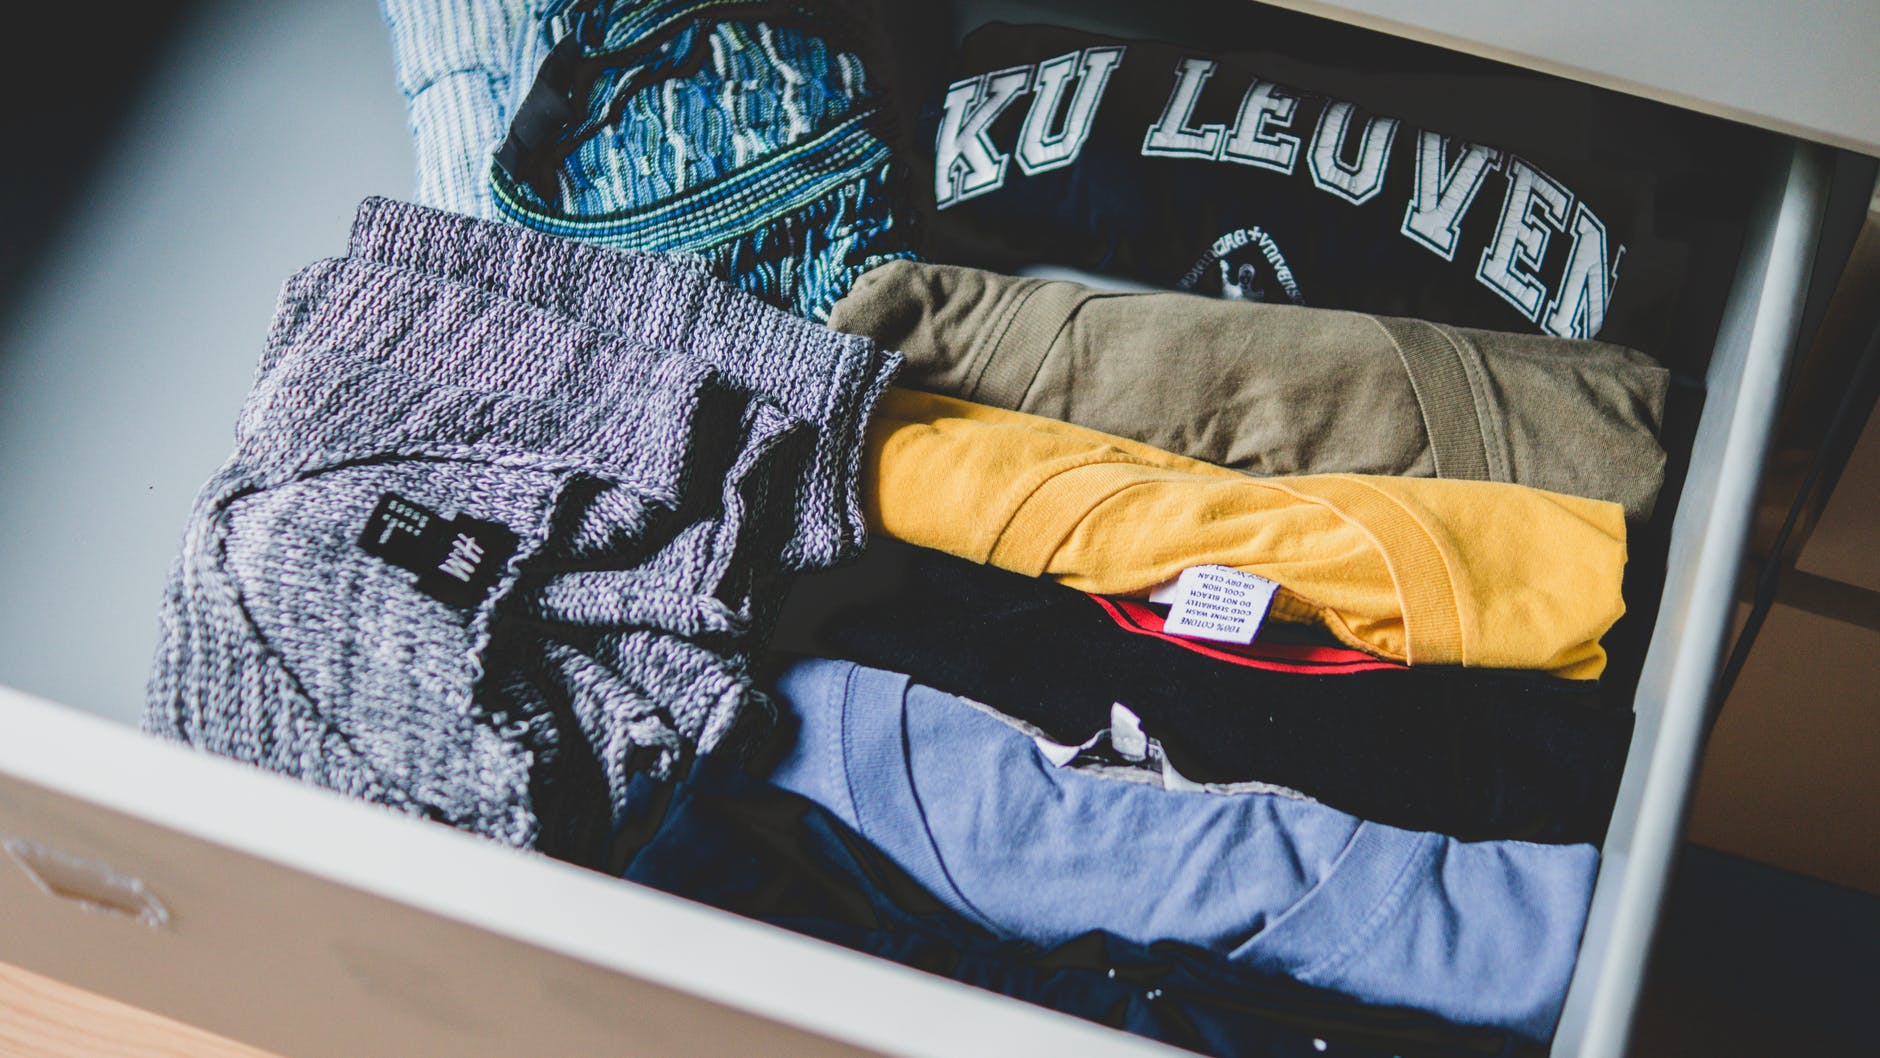 How To Protect Your Clothes From Hard-To-Remove Stains